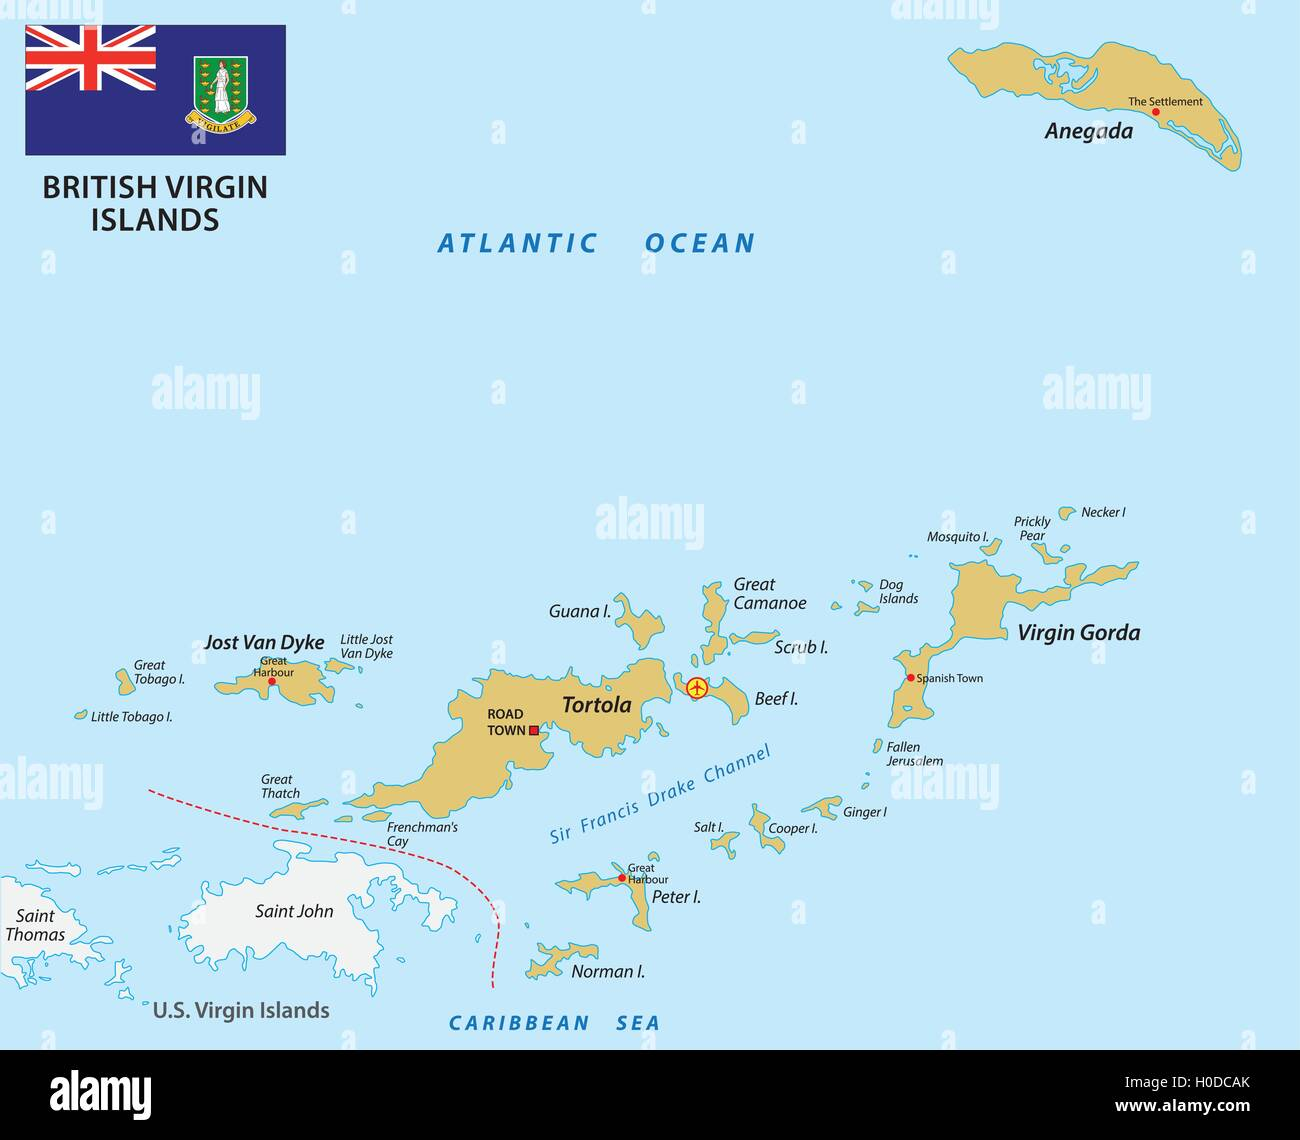 british virgin islands map with flag Stock Vector Art & Illustration ...